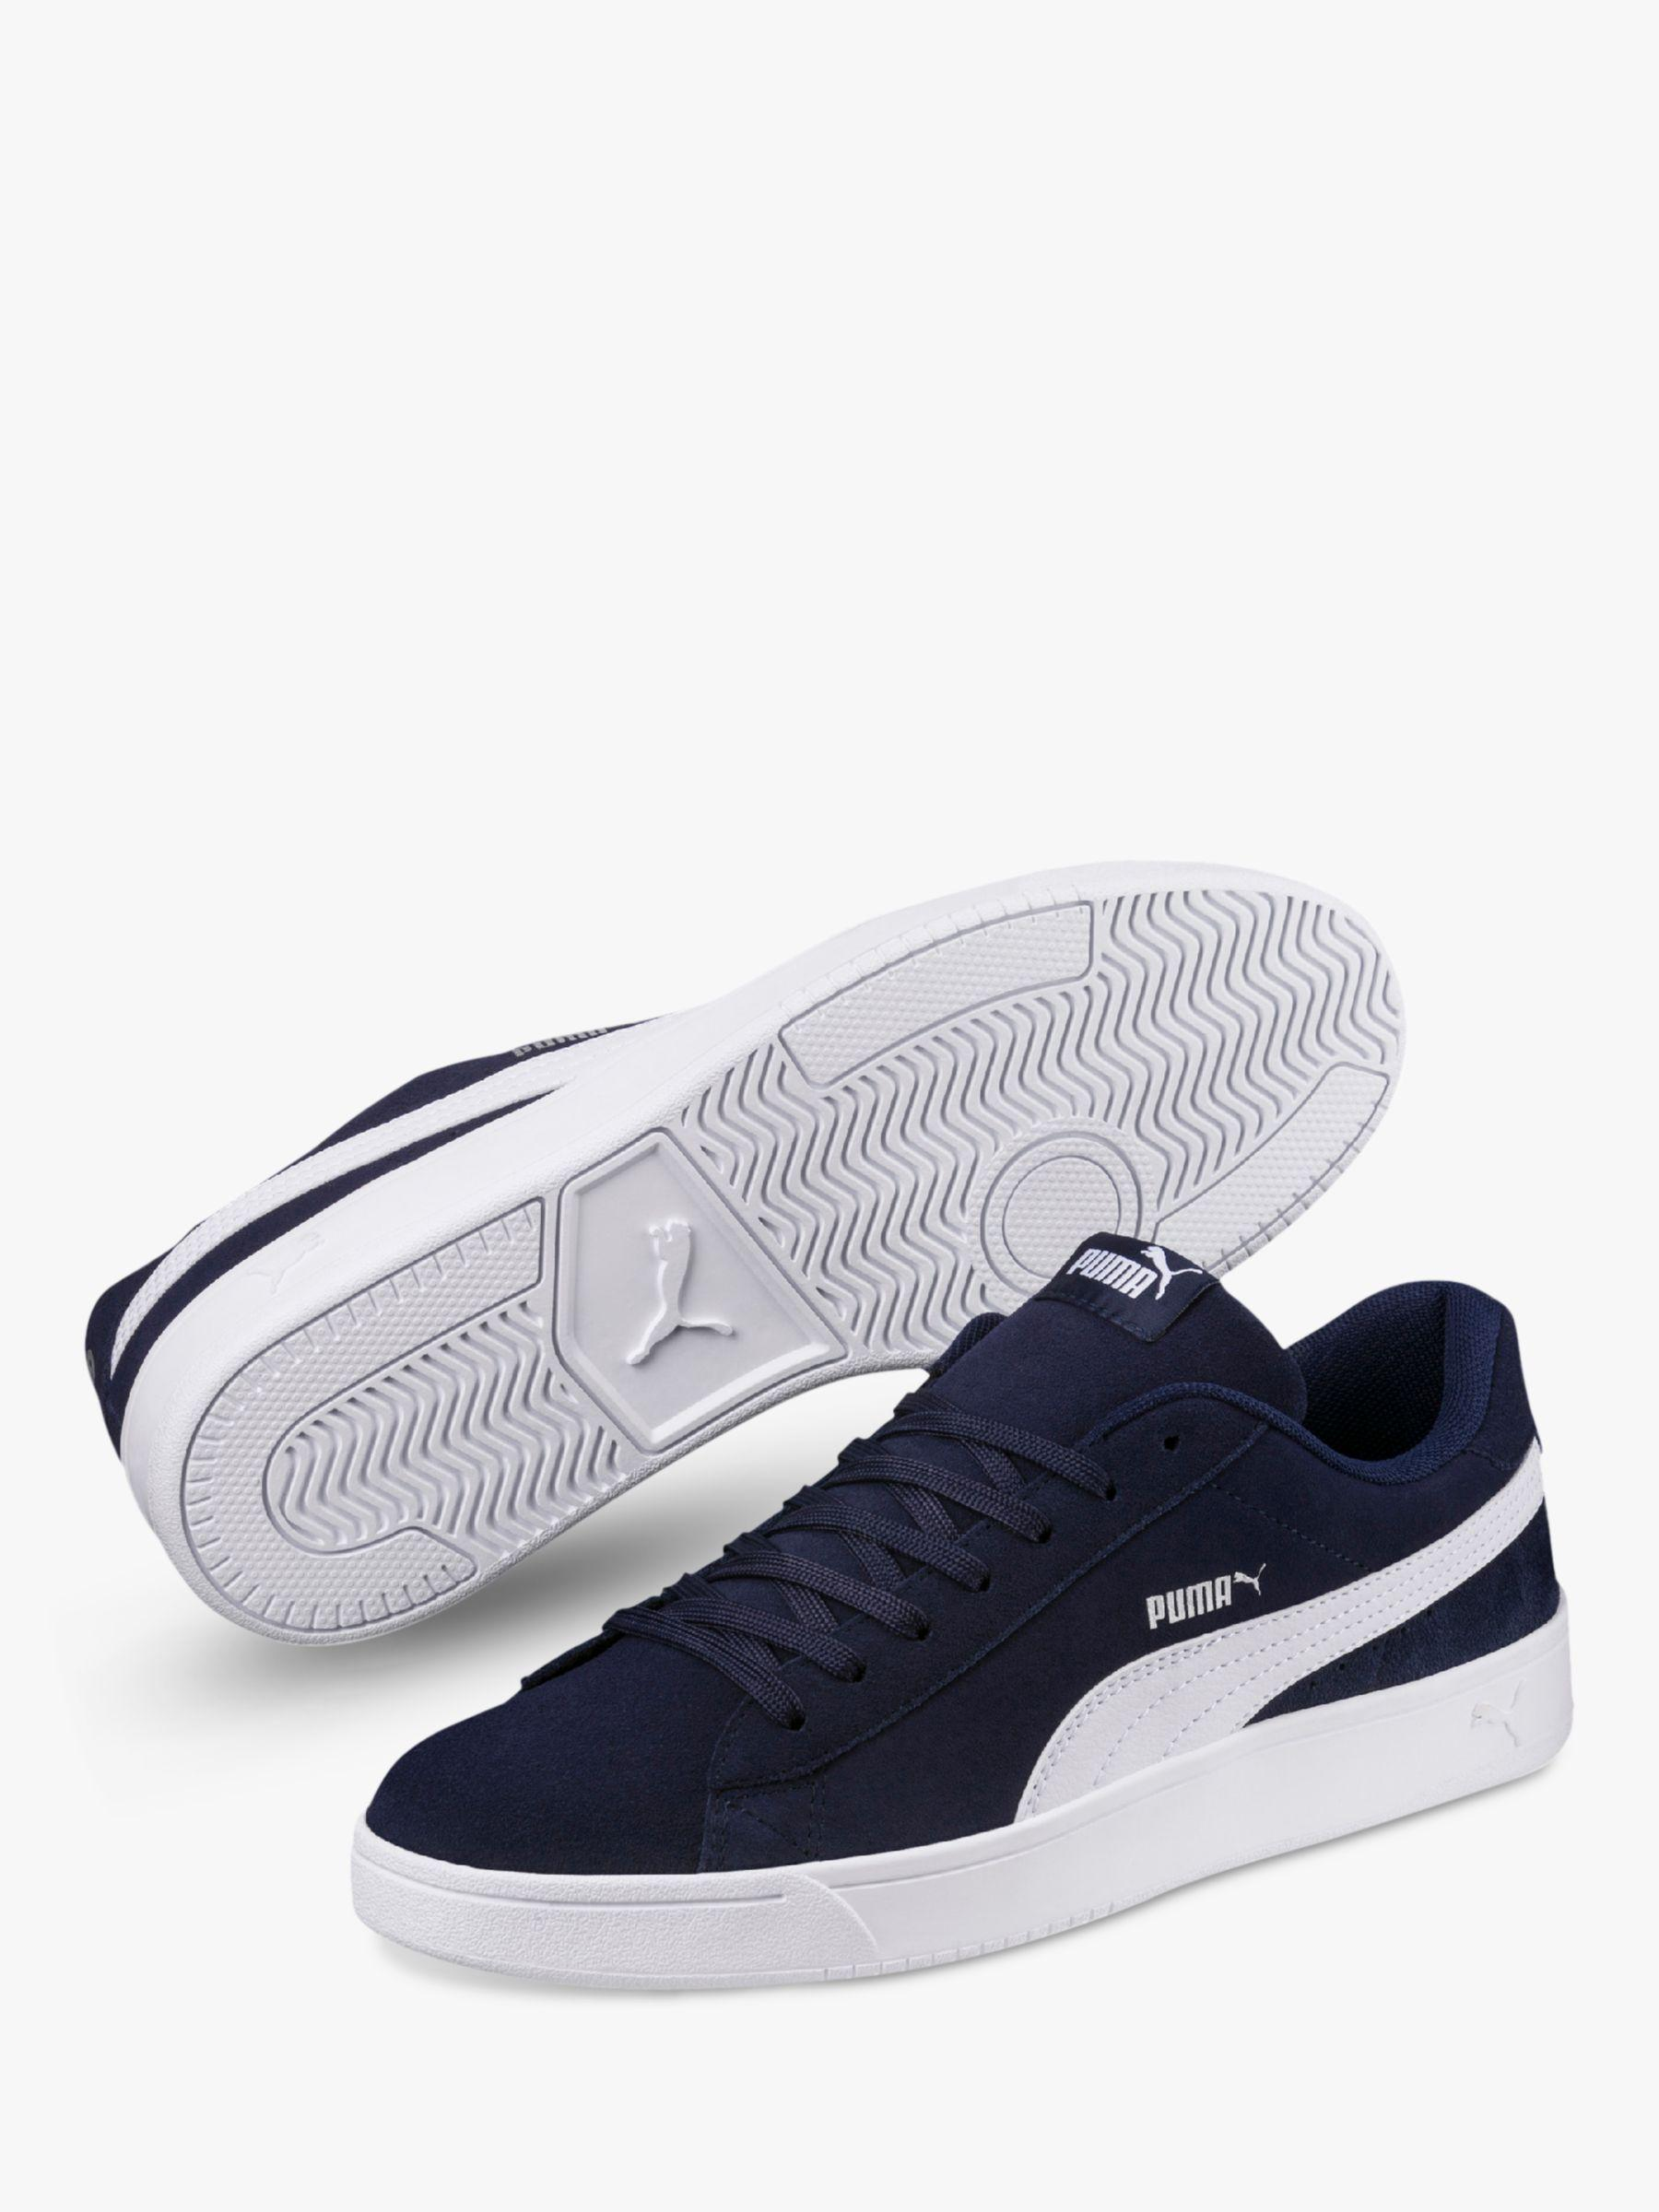 PUMA Court Breaker Derby Men s Trainers in Blue for Men - Lyst bcfb27865